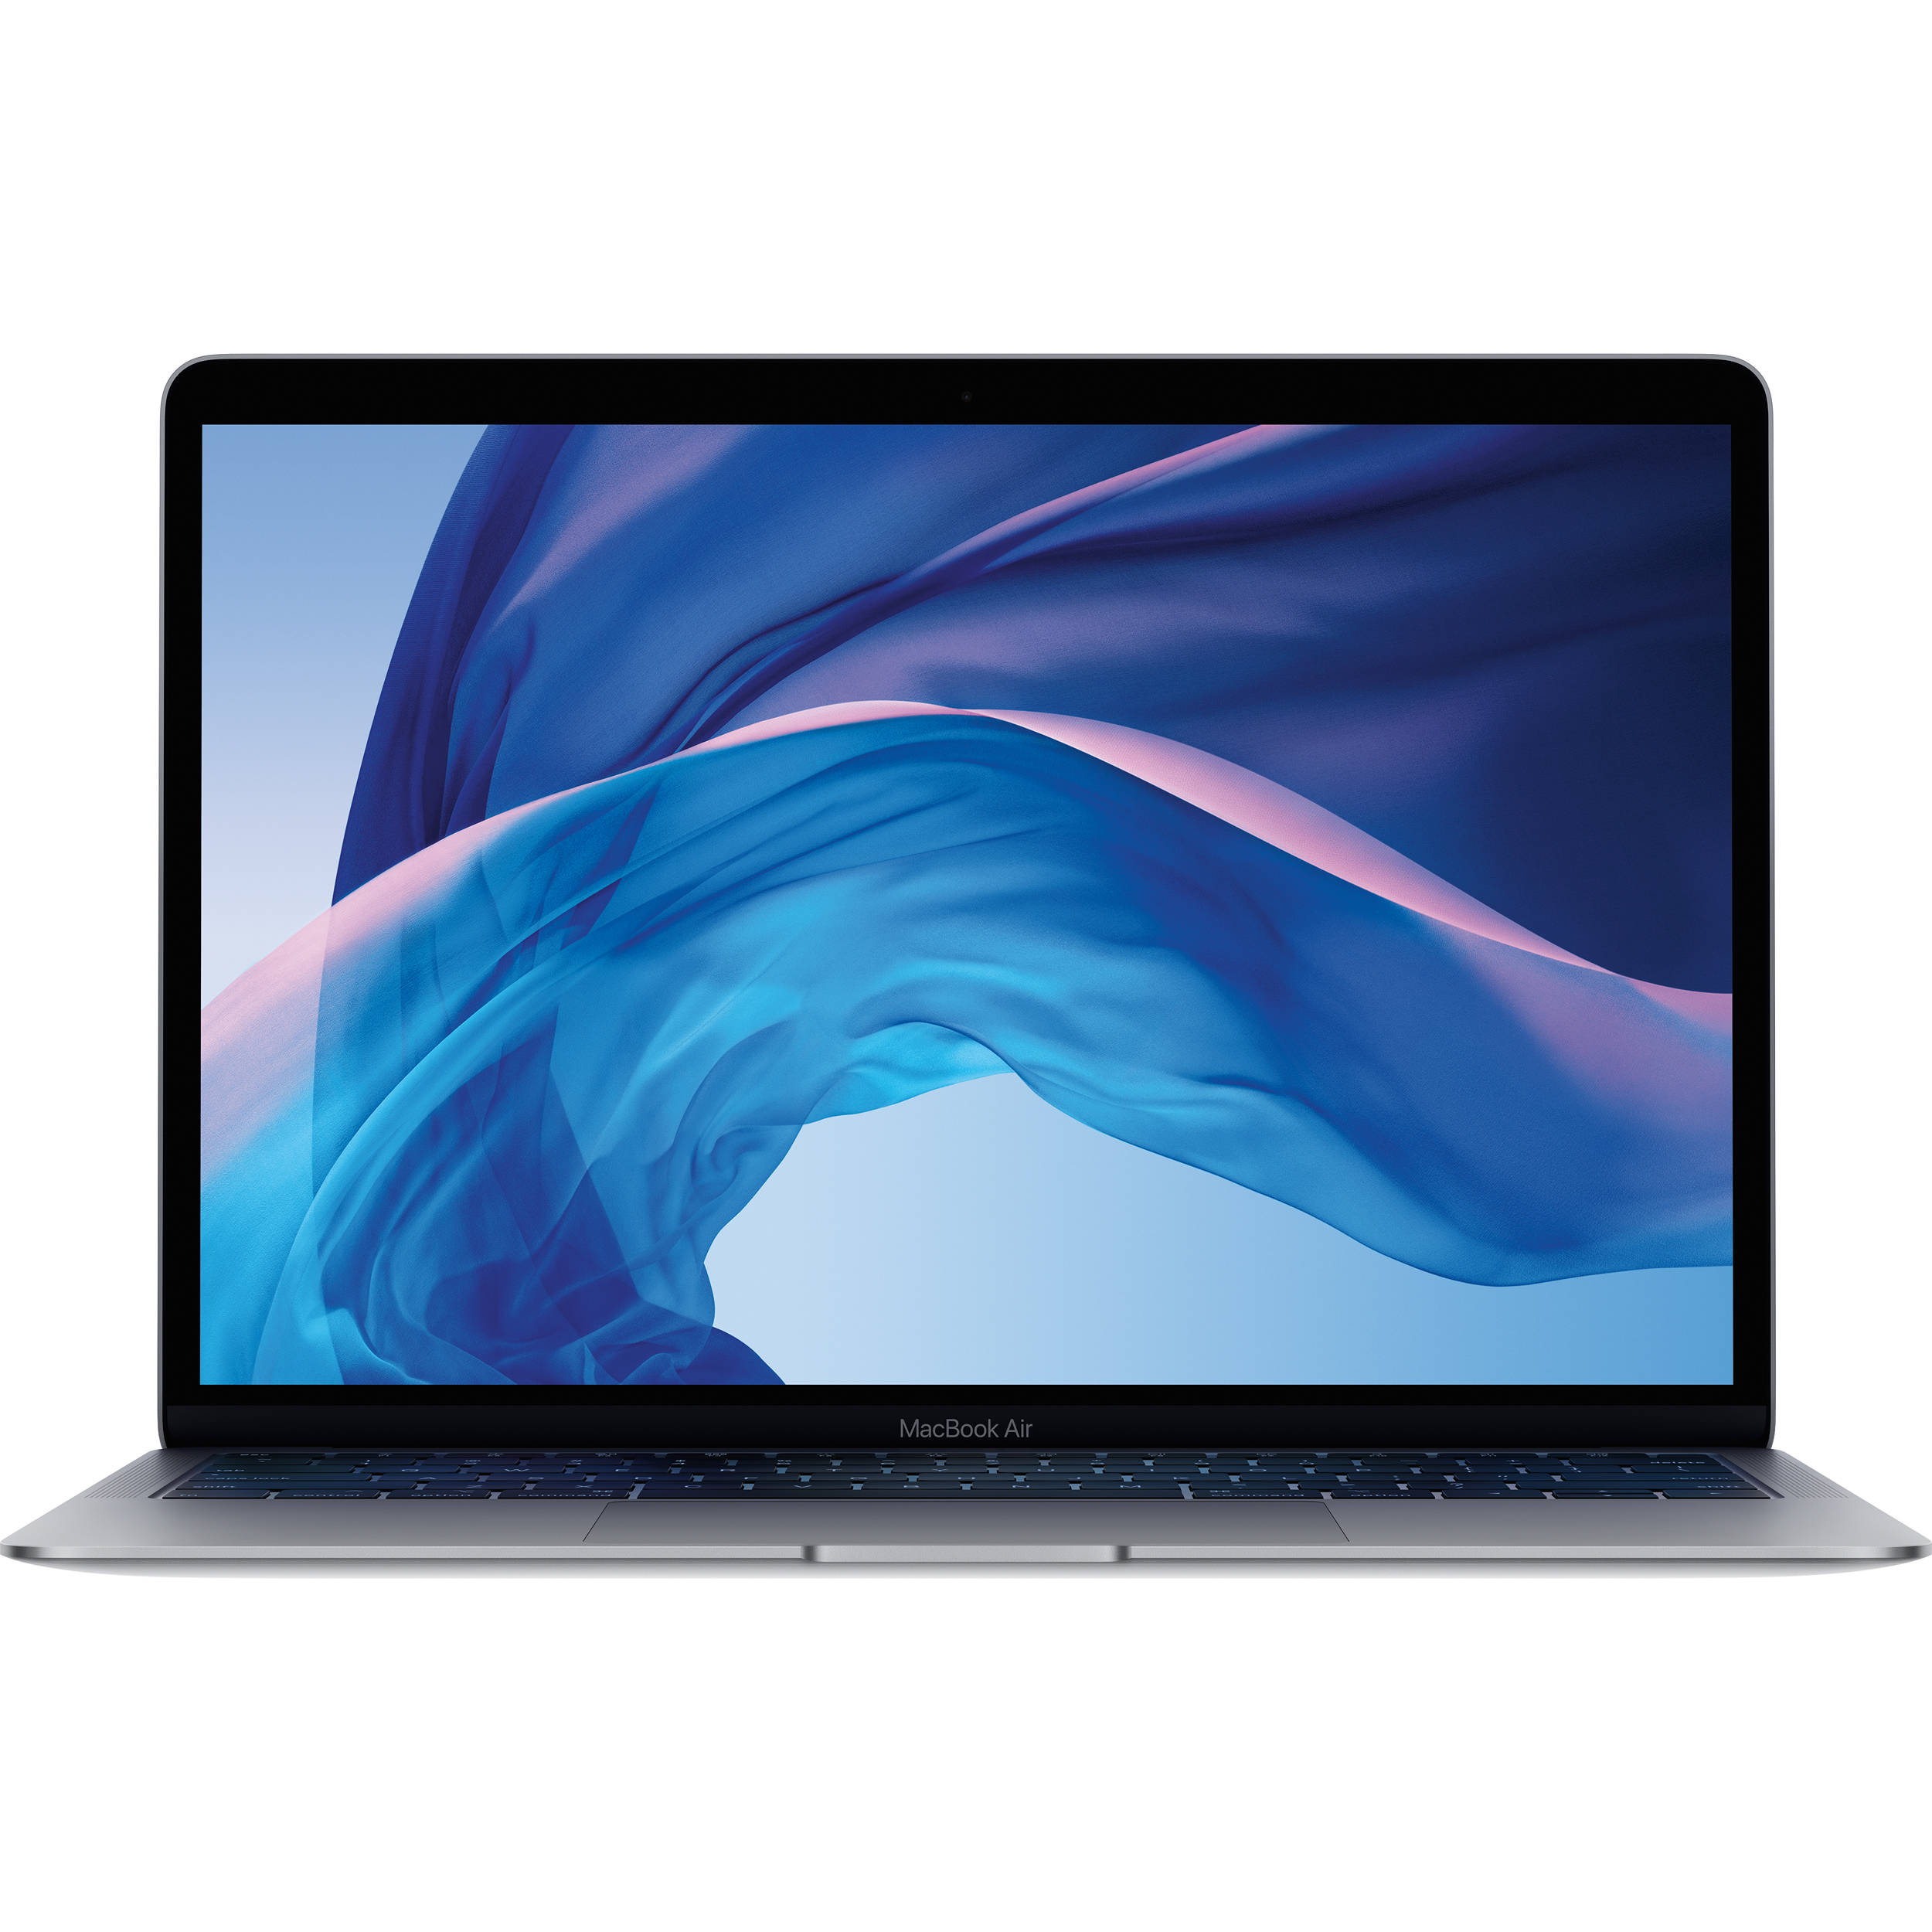 Macbook Air 13'' 2018 256GB SSD (Sliver, Gold, Space Gray)